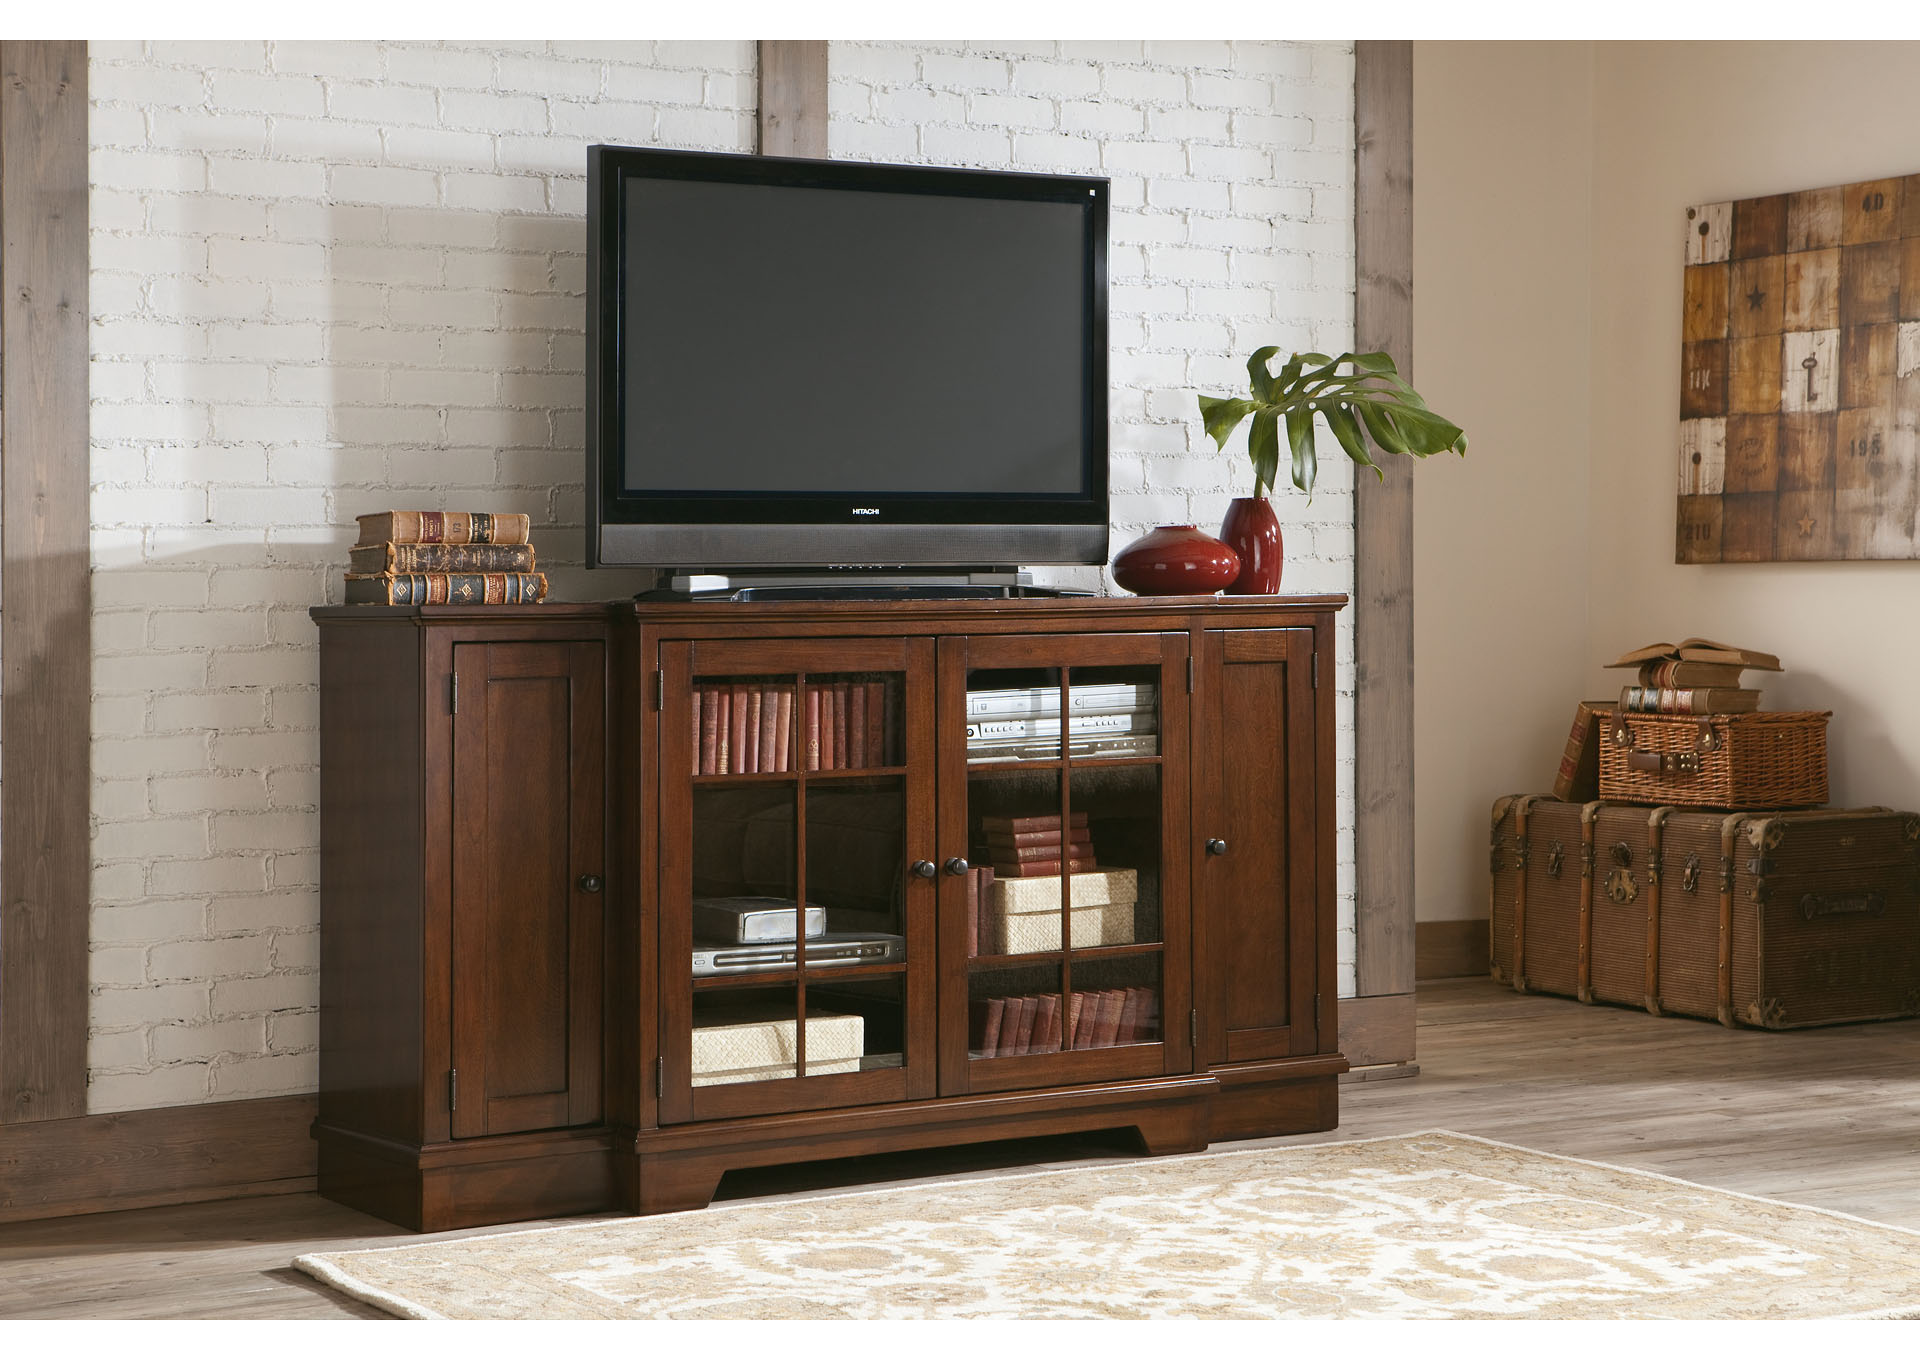 Hodgenville Tall Extra Large TV Stand,Signature Design by Ashley